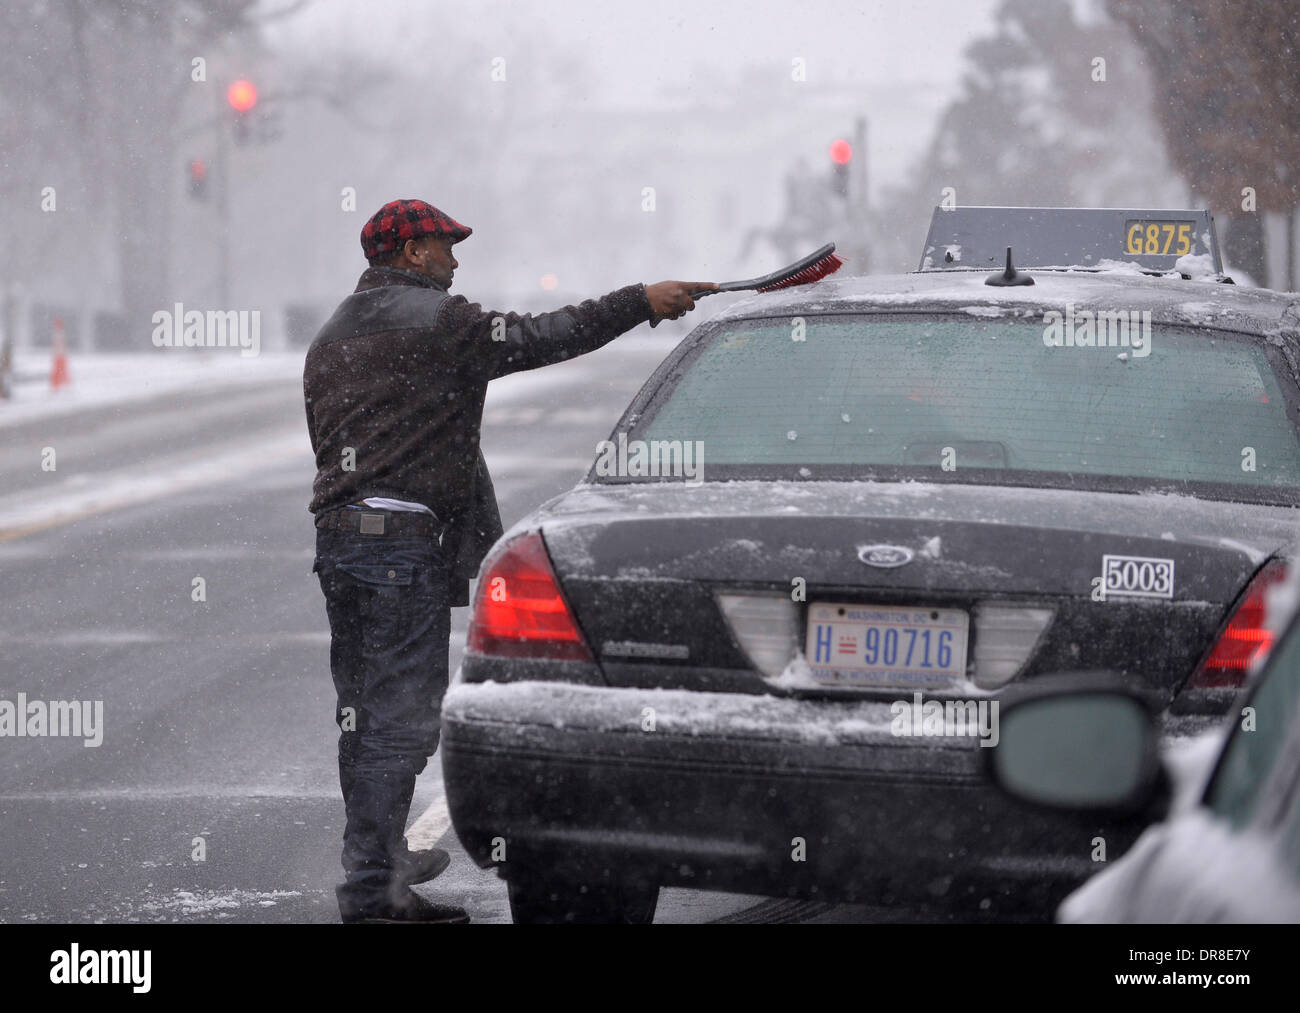 A Taxi Driver Cleans Snow Off His Car Near The White House In Washington Dc Capital Of The United States Jan